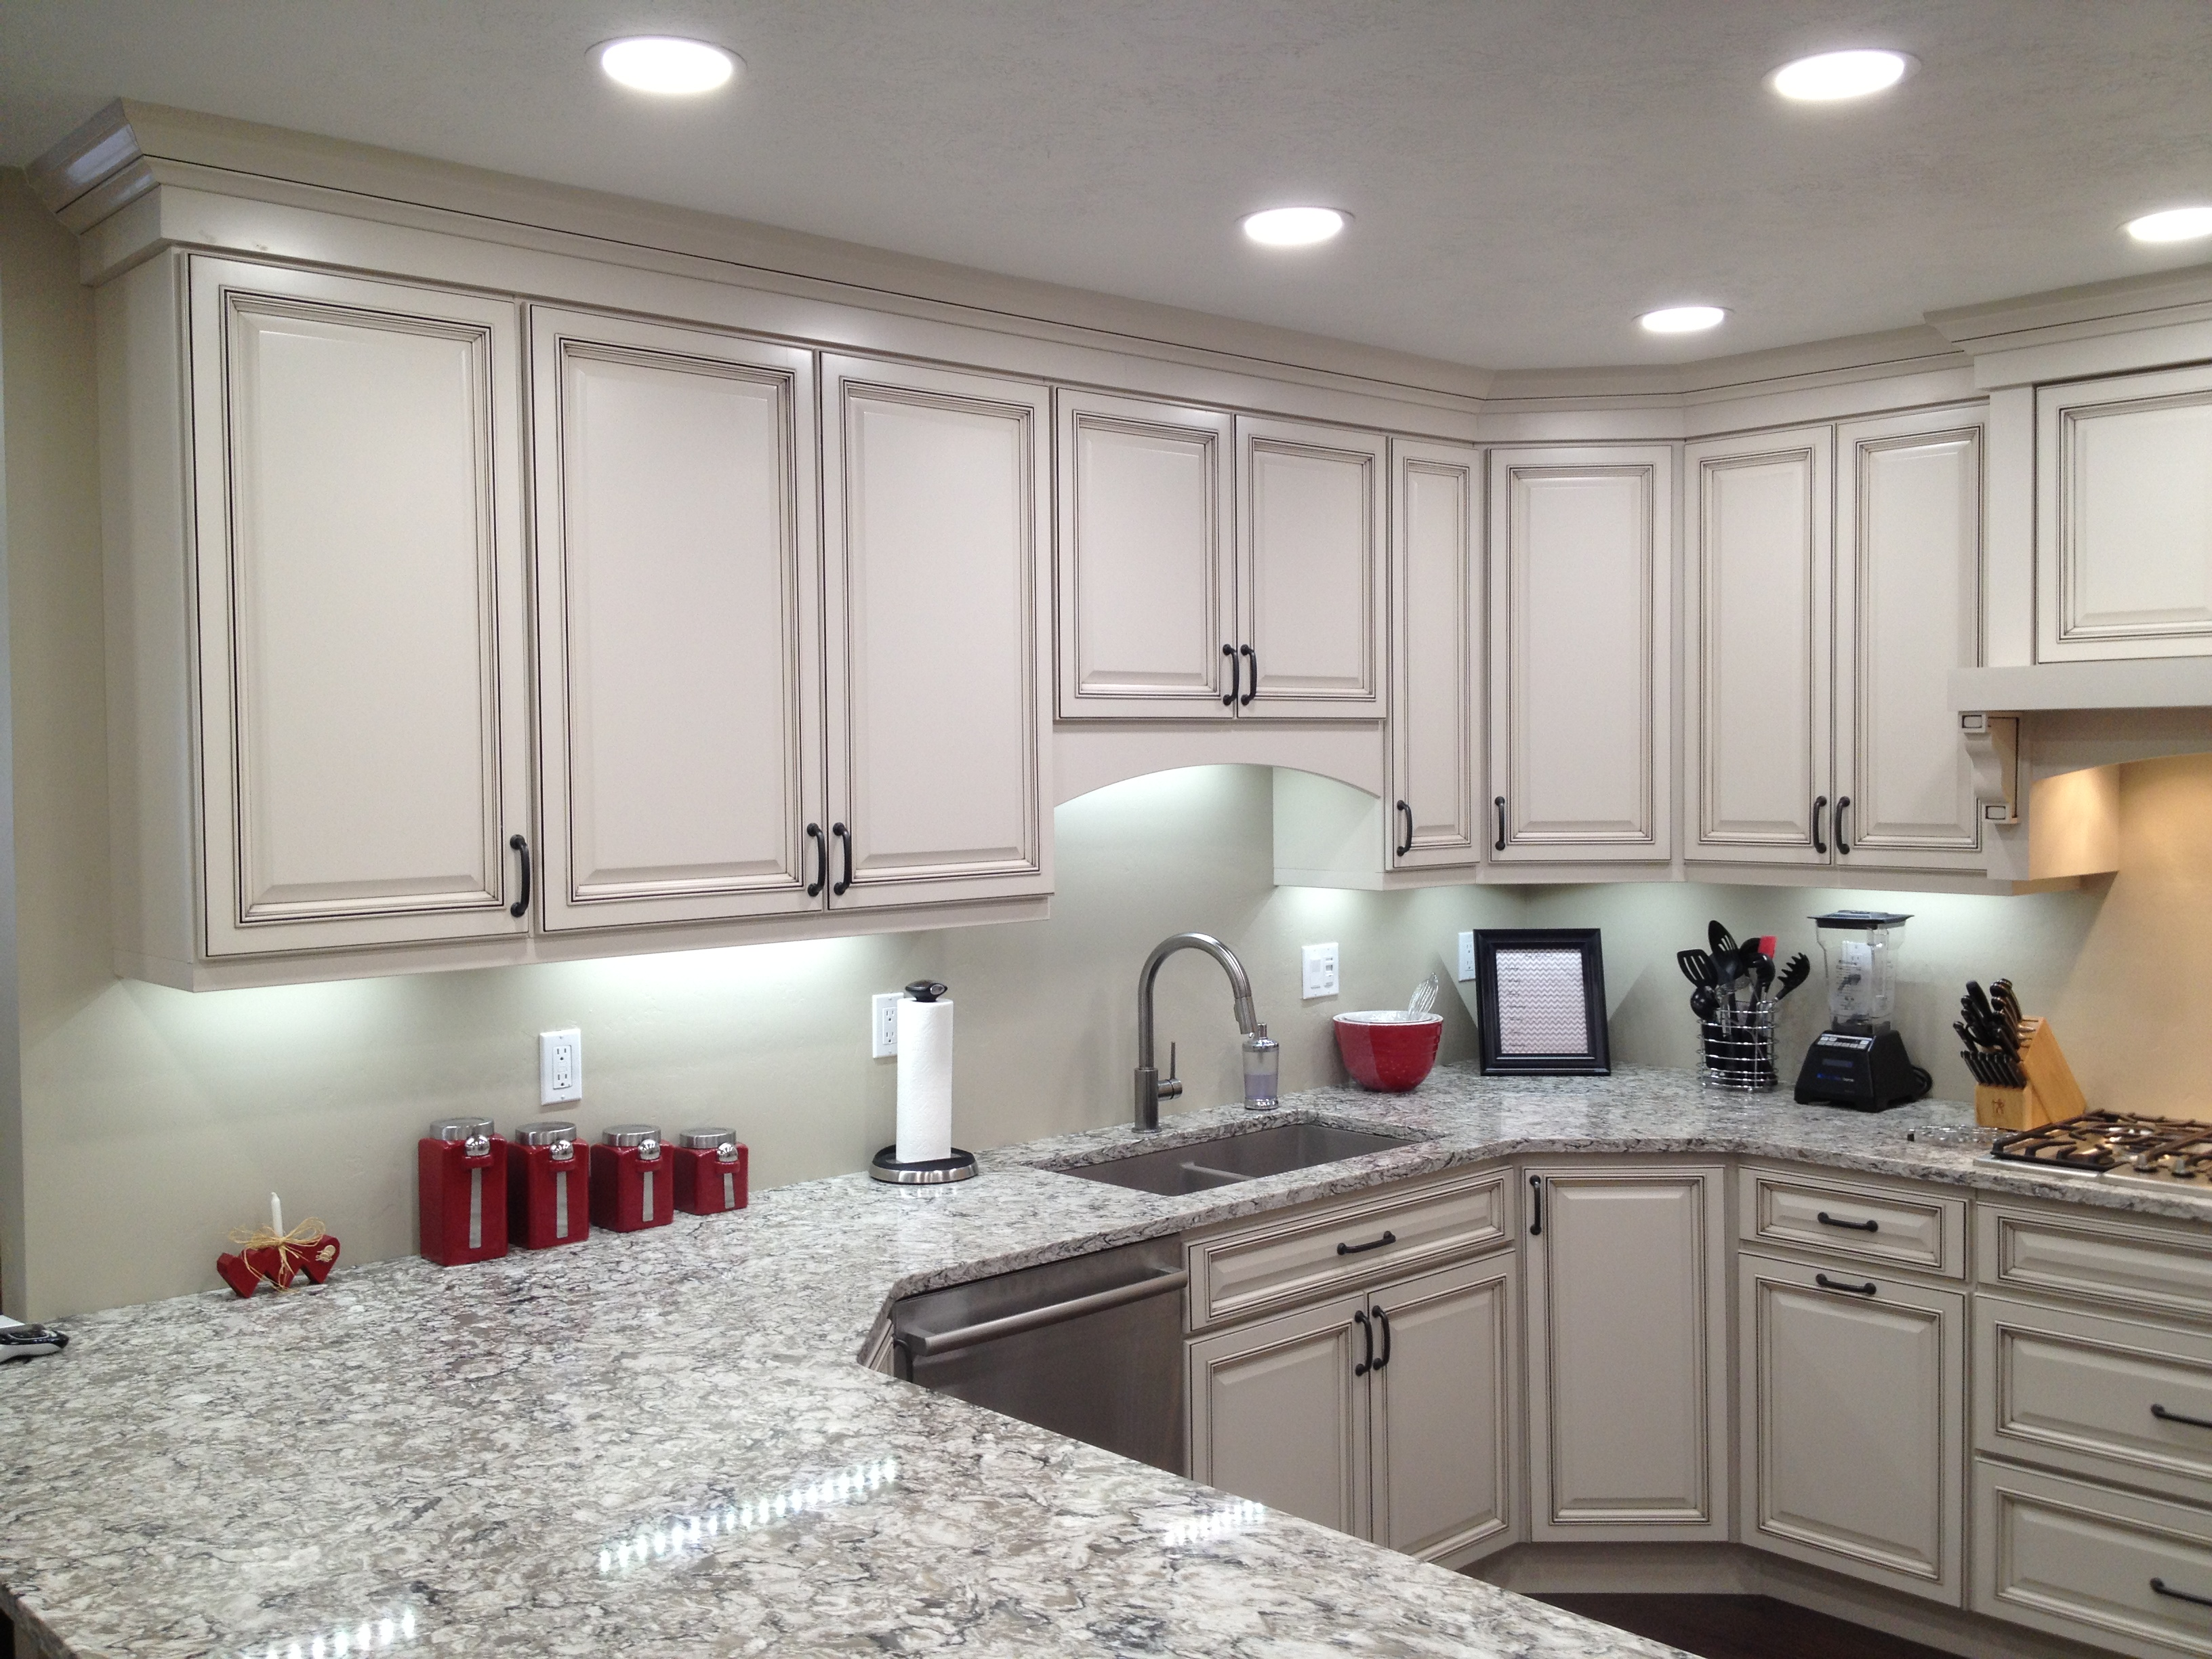 kitchen led under cabinet lighting. pax led under cabinet lighting kitchen led